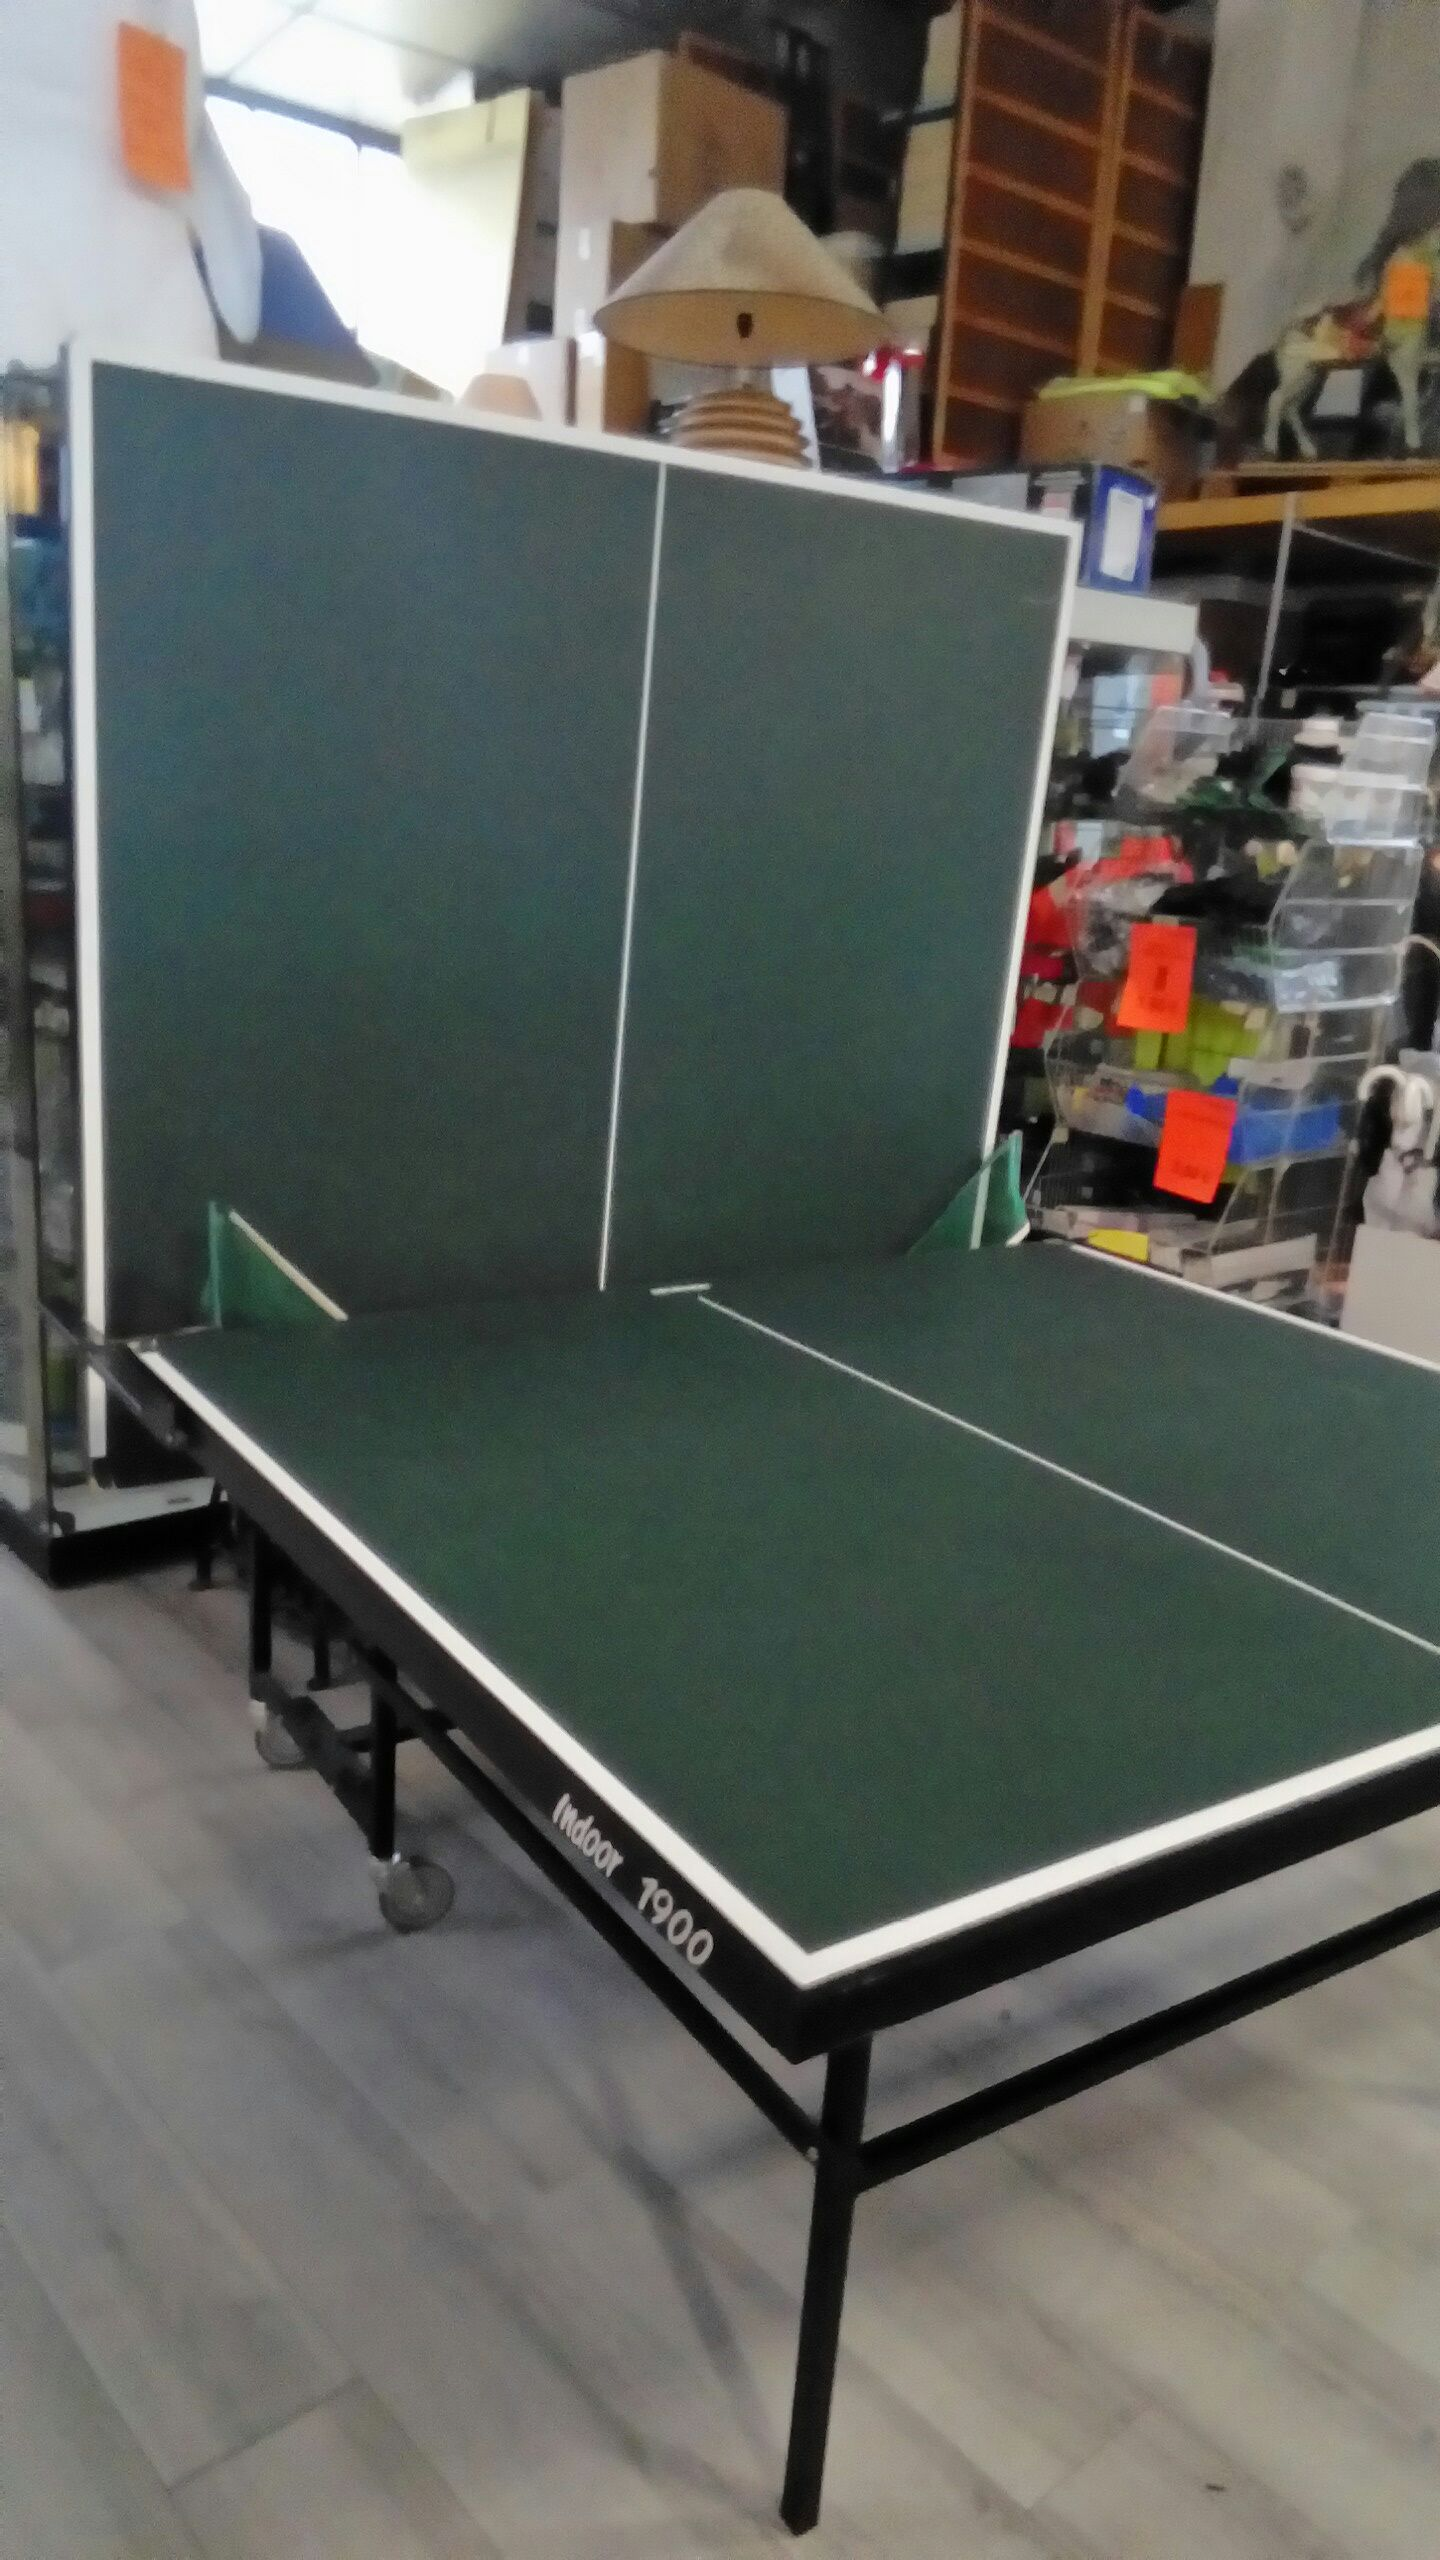 Table de ping pong int rieur decathlon occasion troc - Table de ping pong exterieur decathlon ...